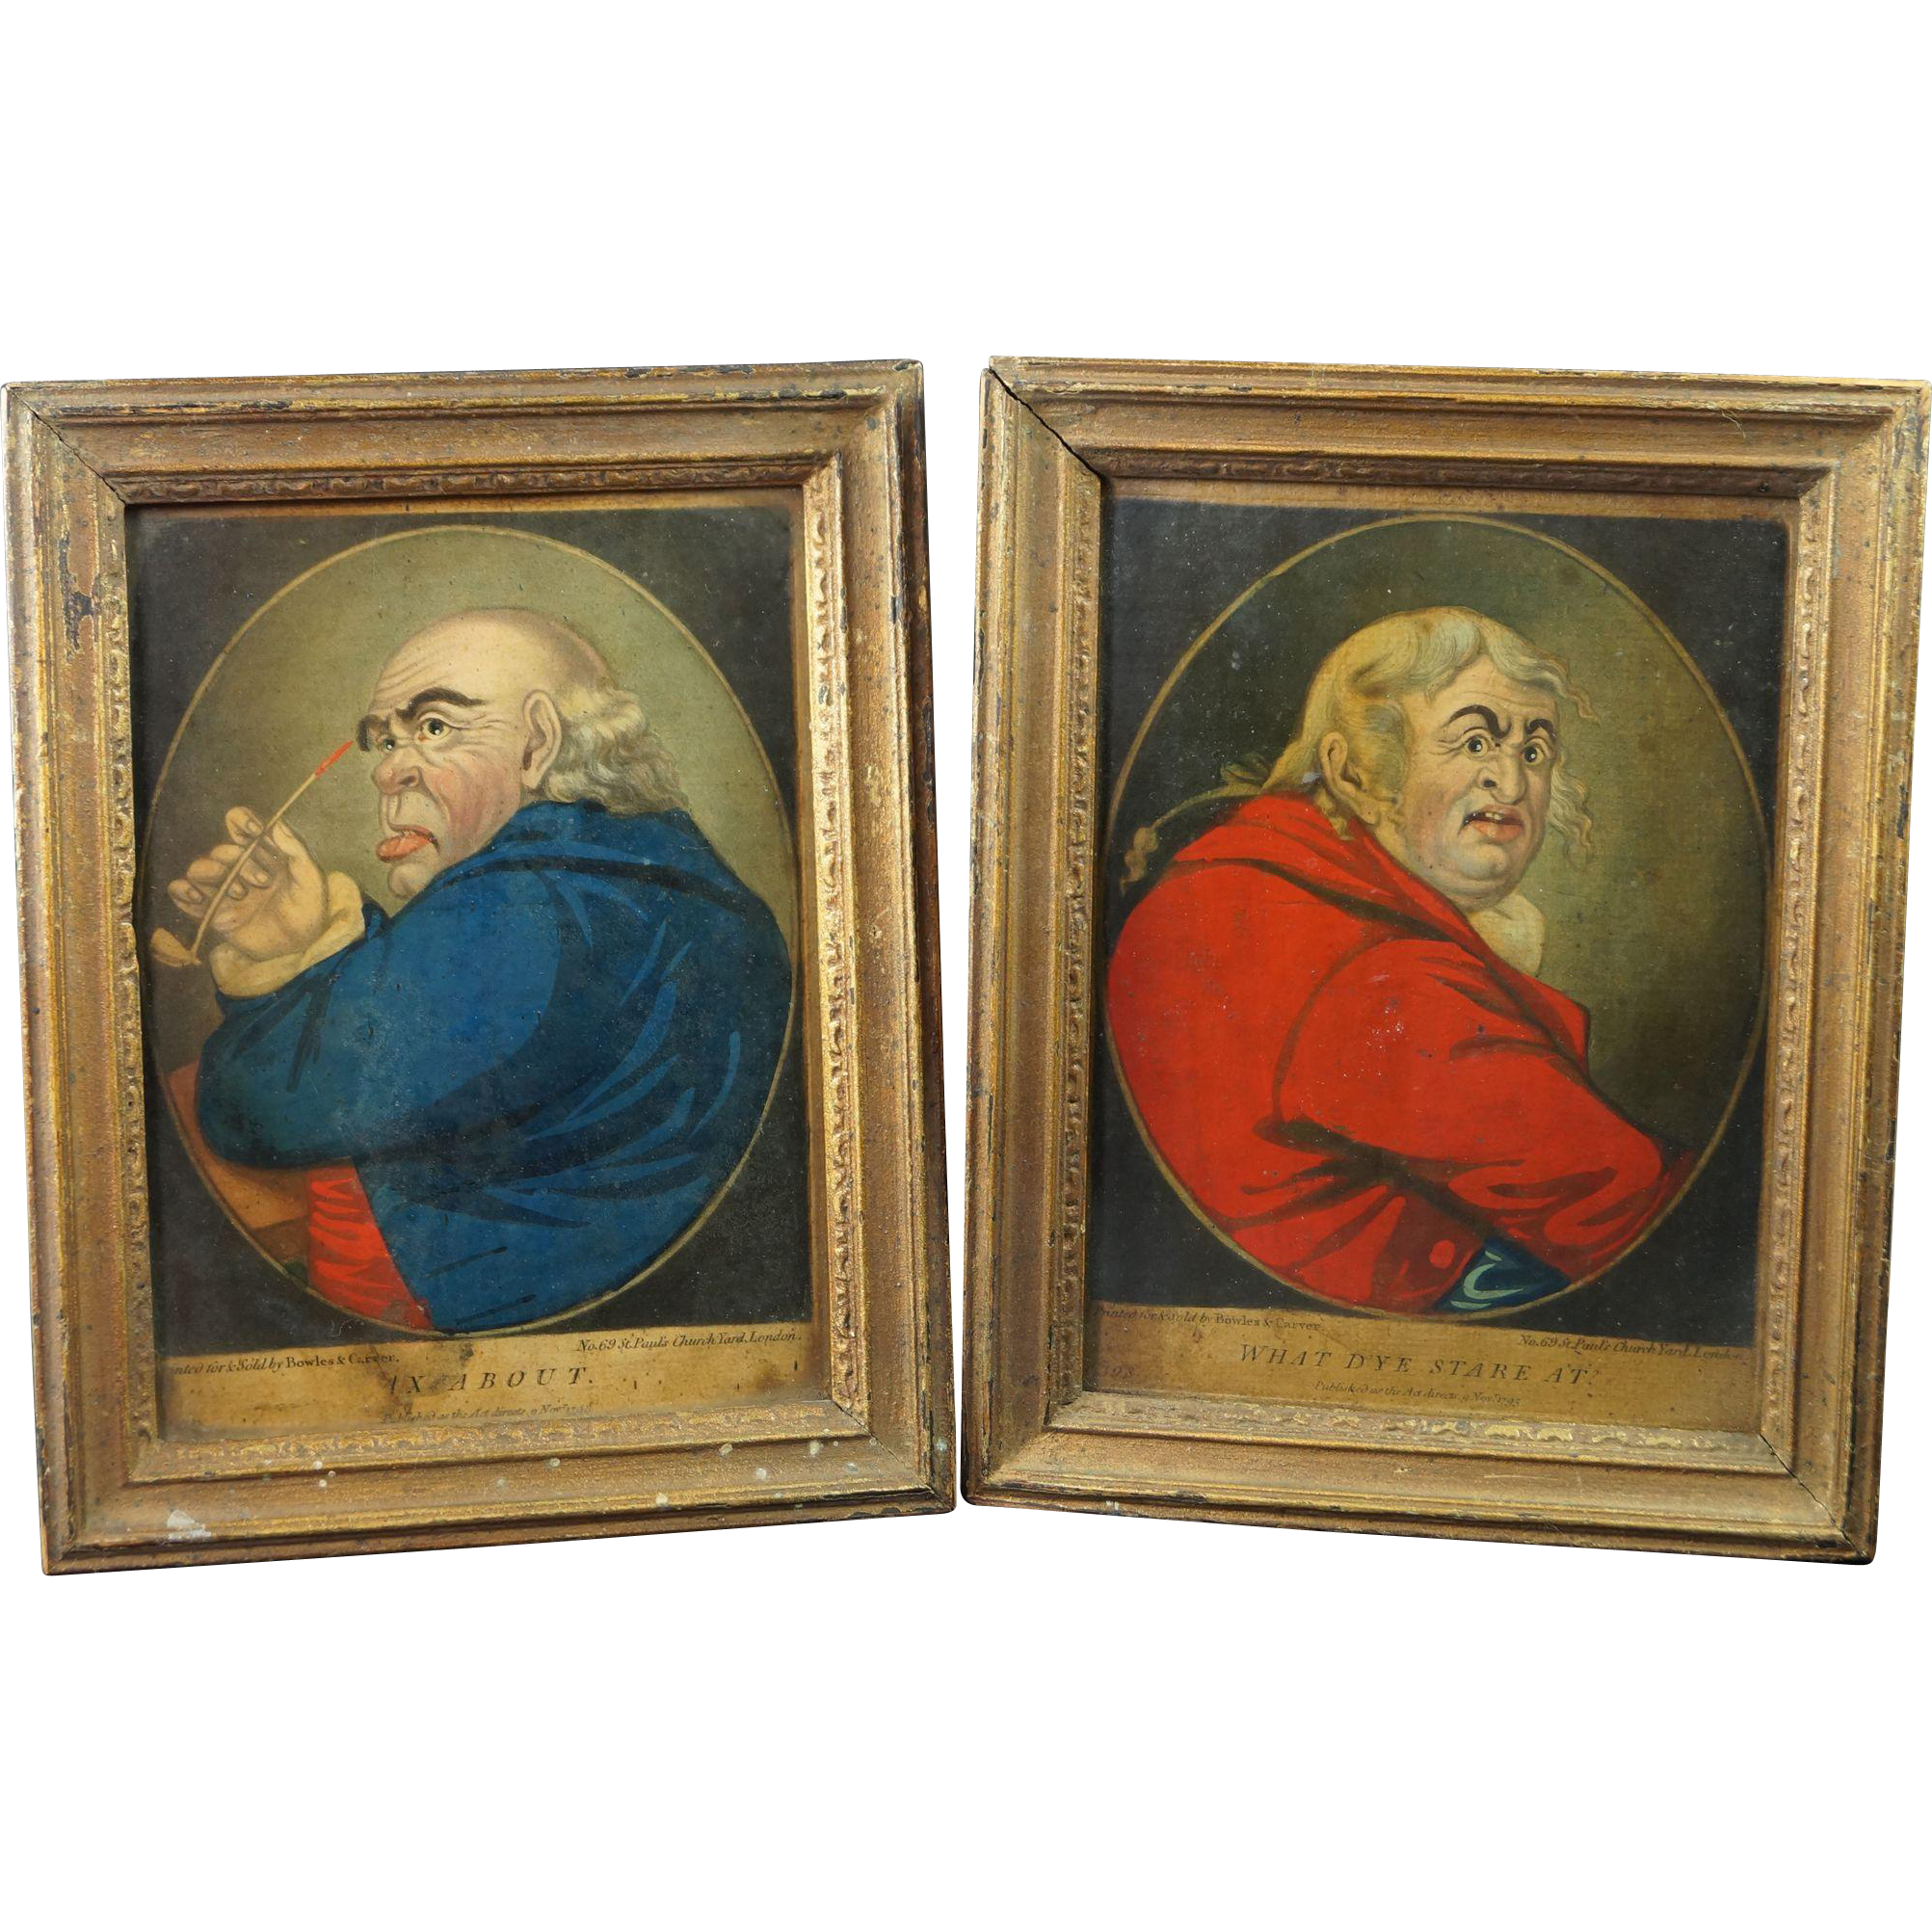 Rare Georgian Mezzotint Droll Pair Satirical Bowles and Carver Dated 1795